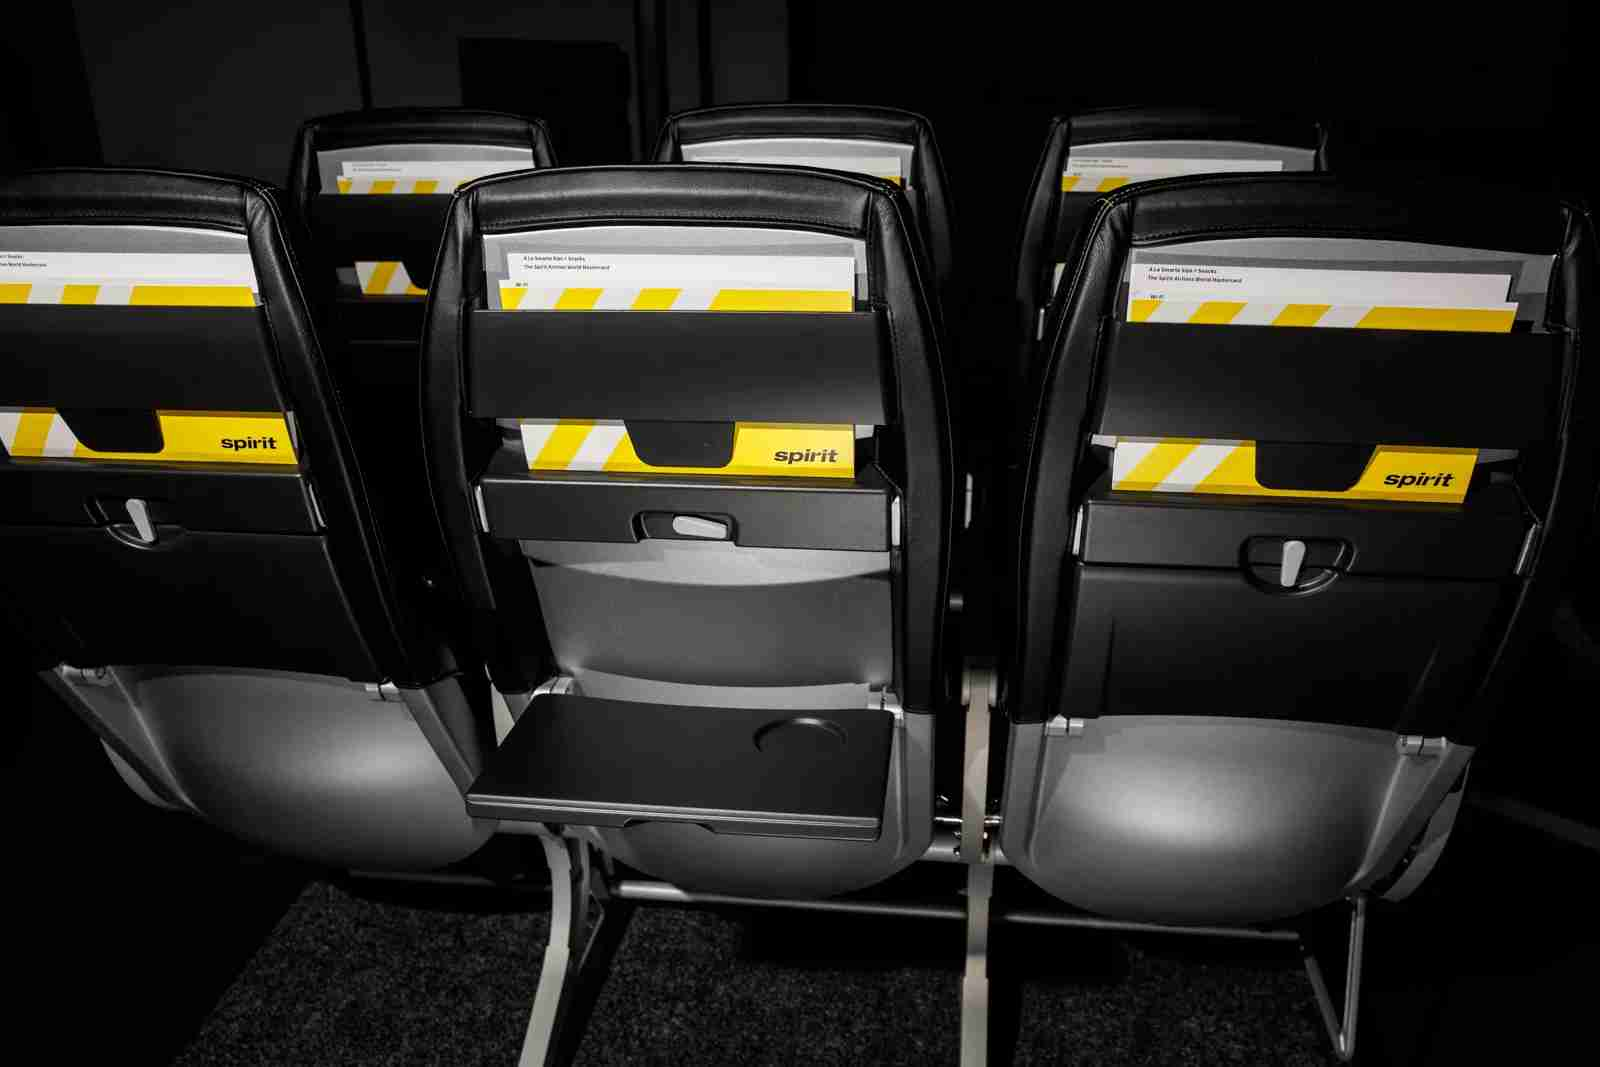 Spirit Airlines showed off its new seats in a demonstration in Los Angeles on Sept. 9, 2019. (Photo by Patrick Fallon/The Points Guy)